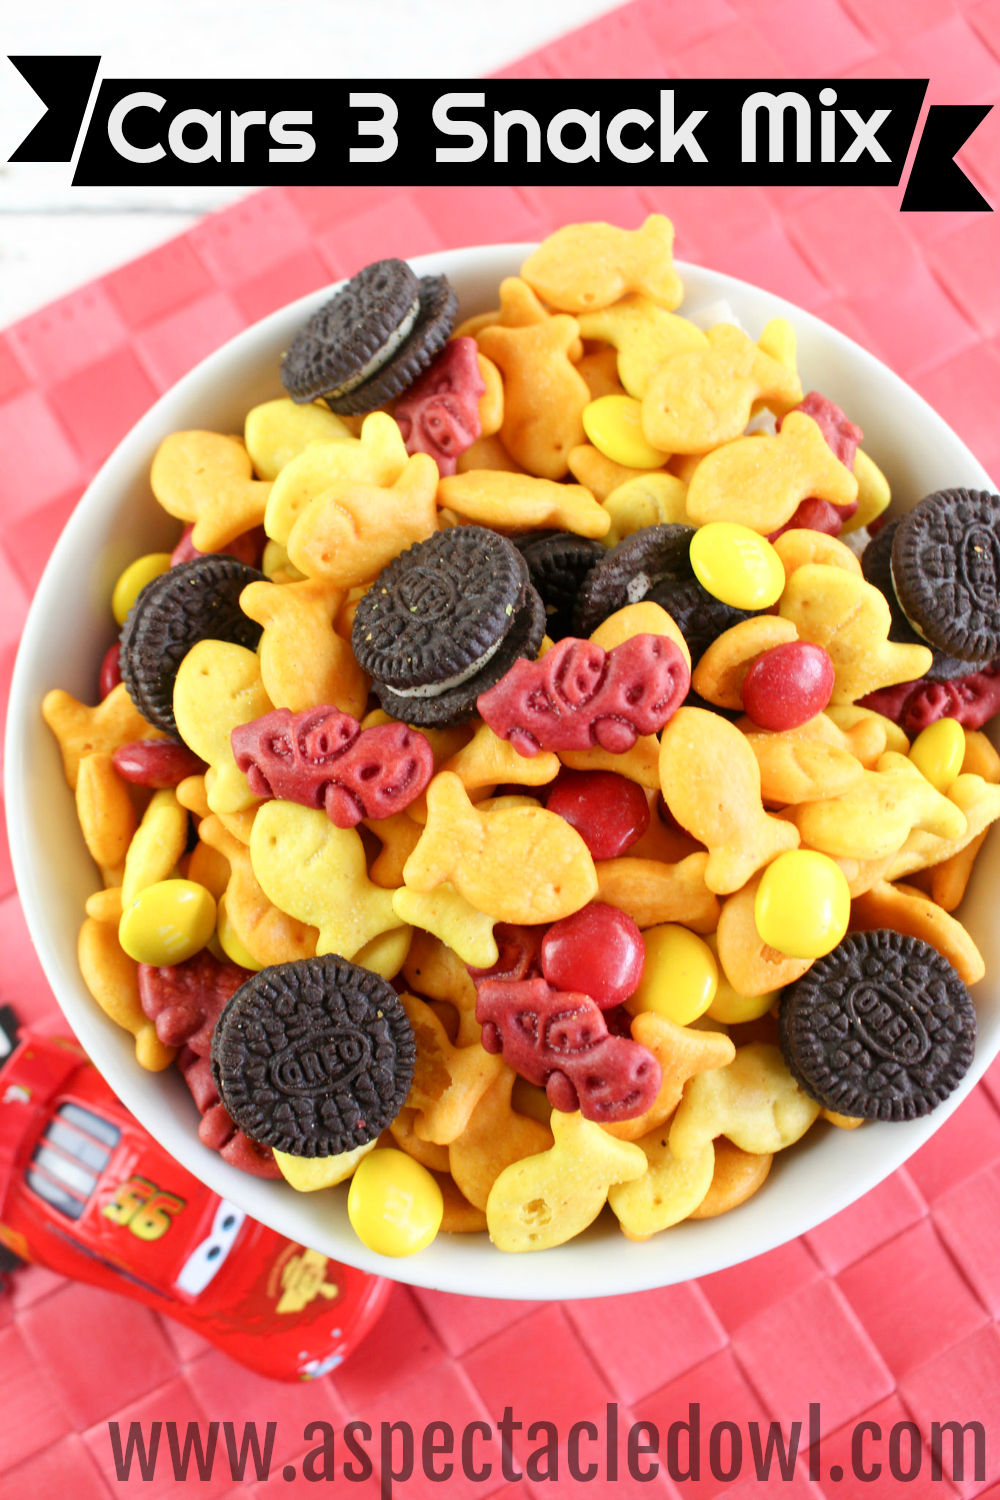 Cars 3 Snack Mix